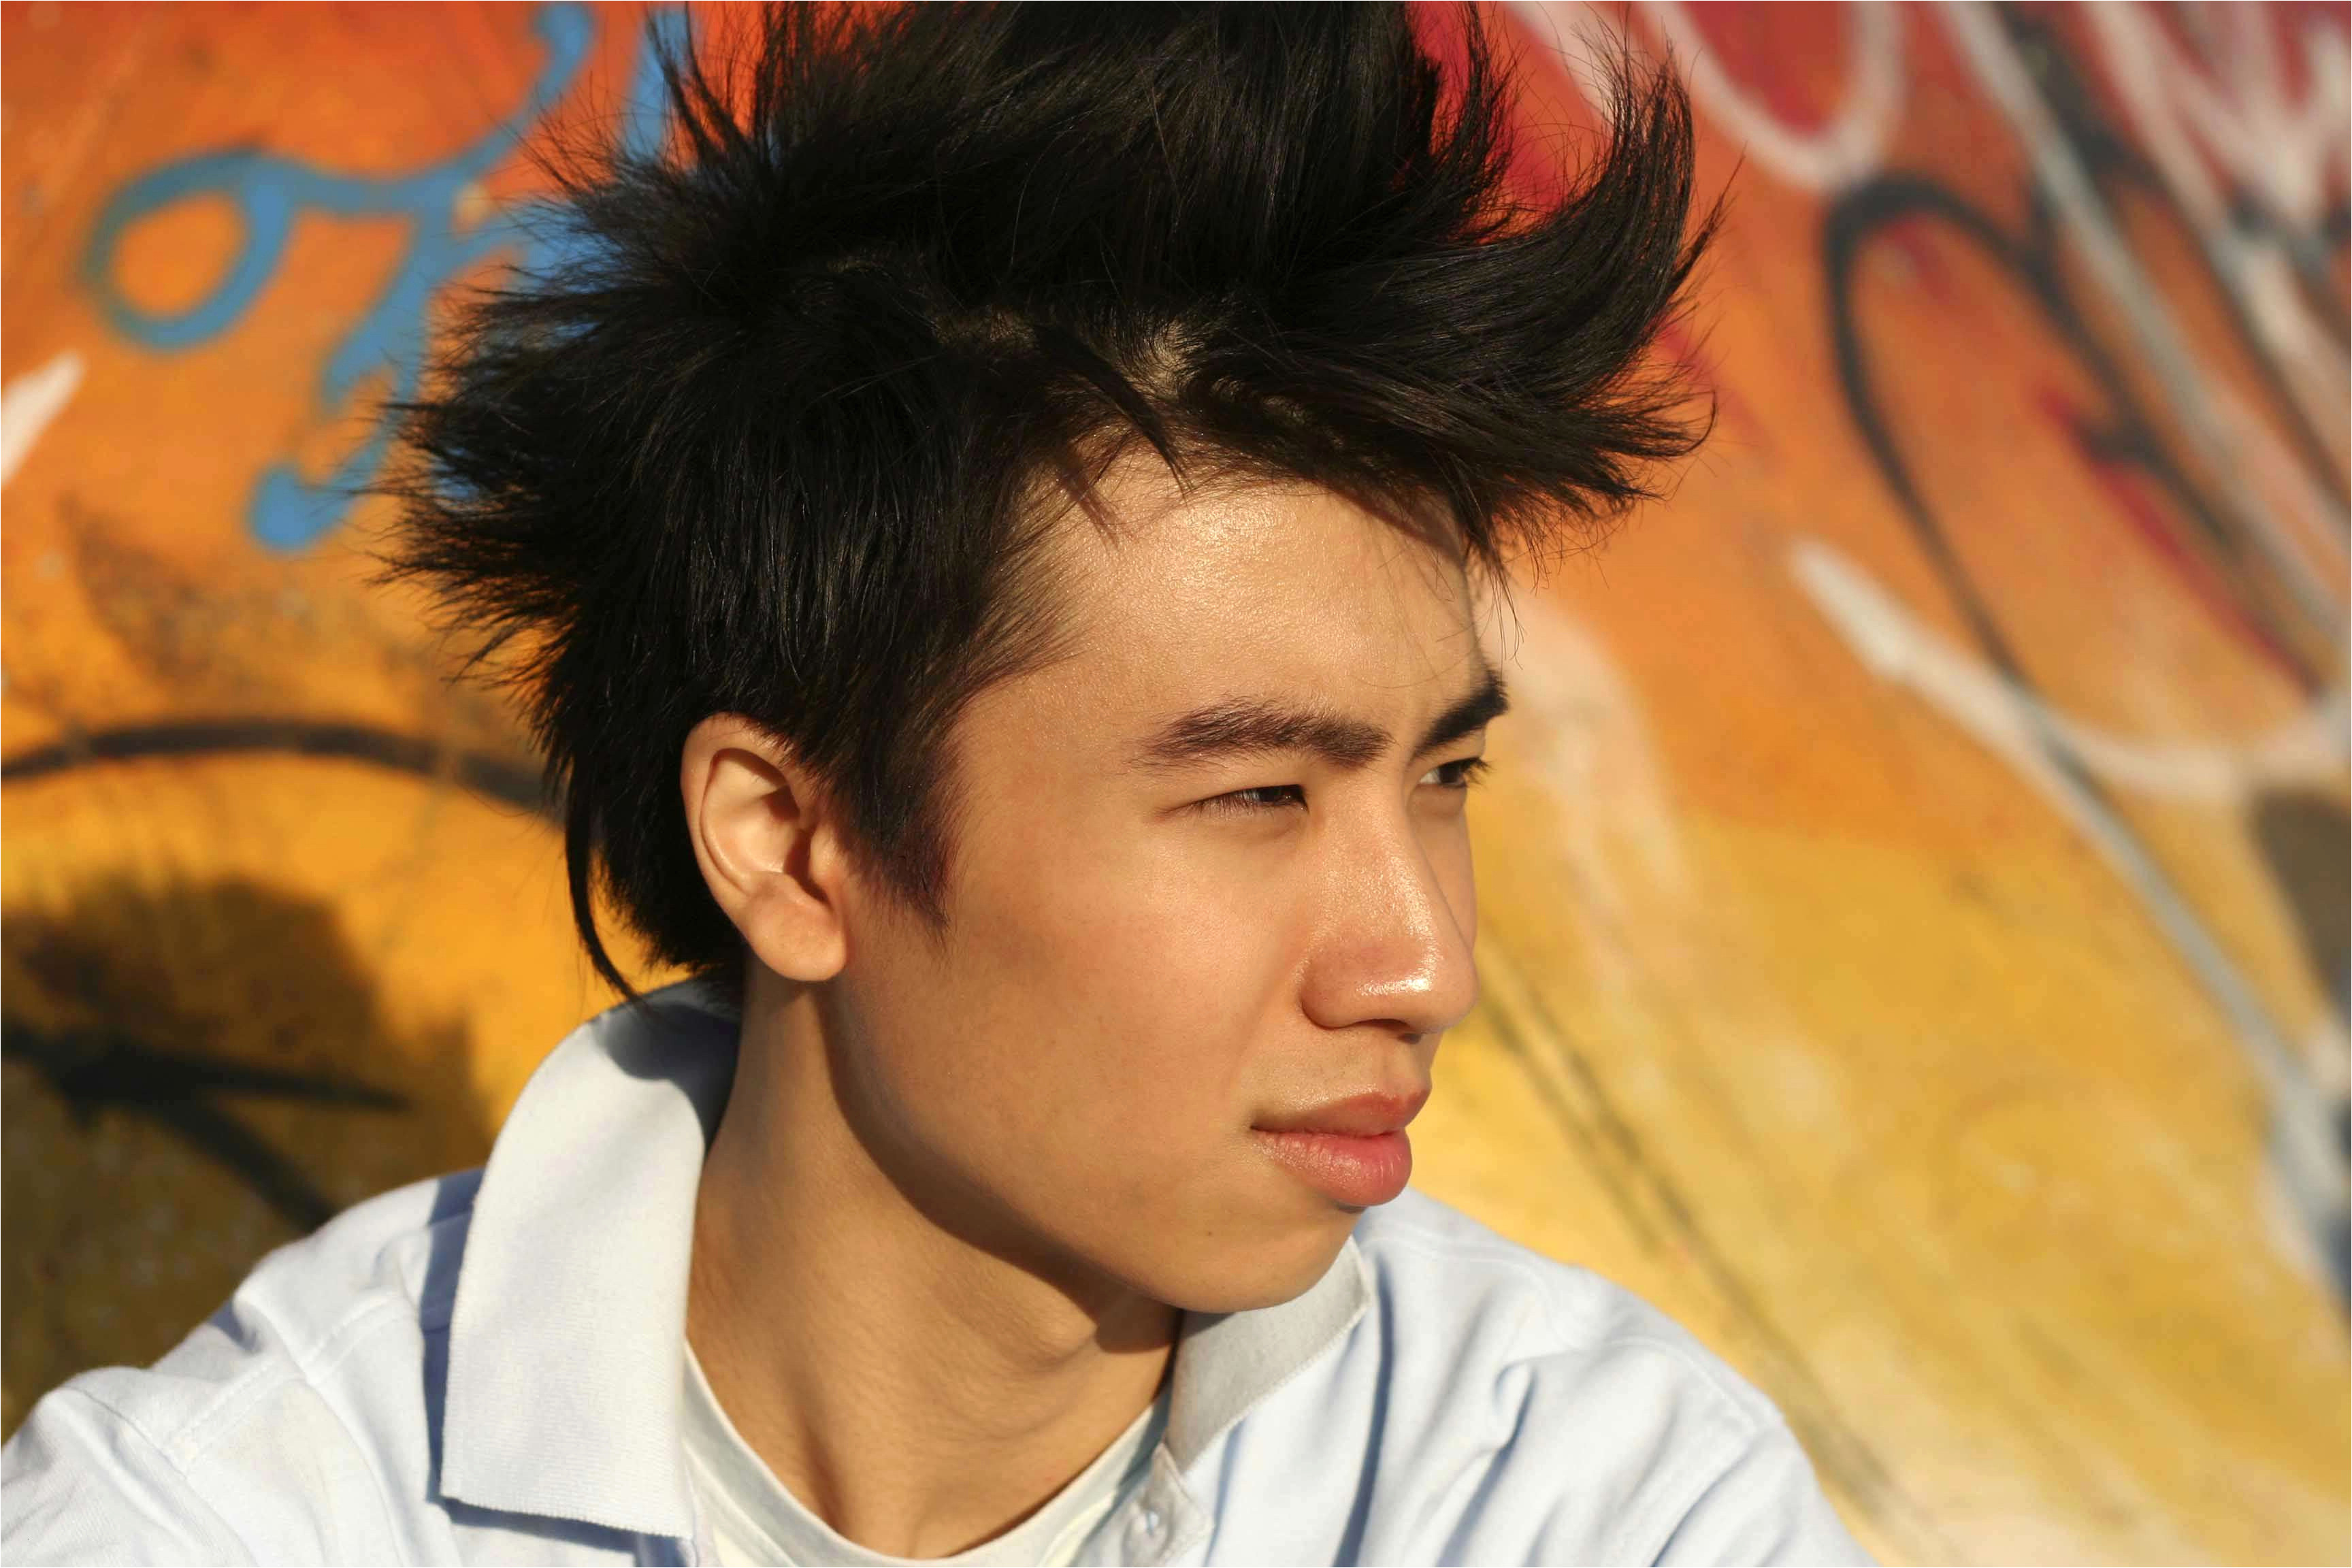 Boy Hair Style App Inspirational New Hairstyle App Luxury Hairstyles for Men Luxury Haircuts 0d New